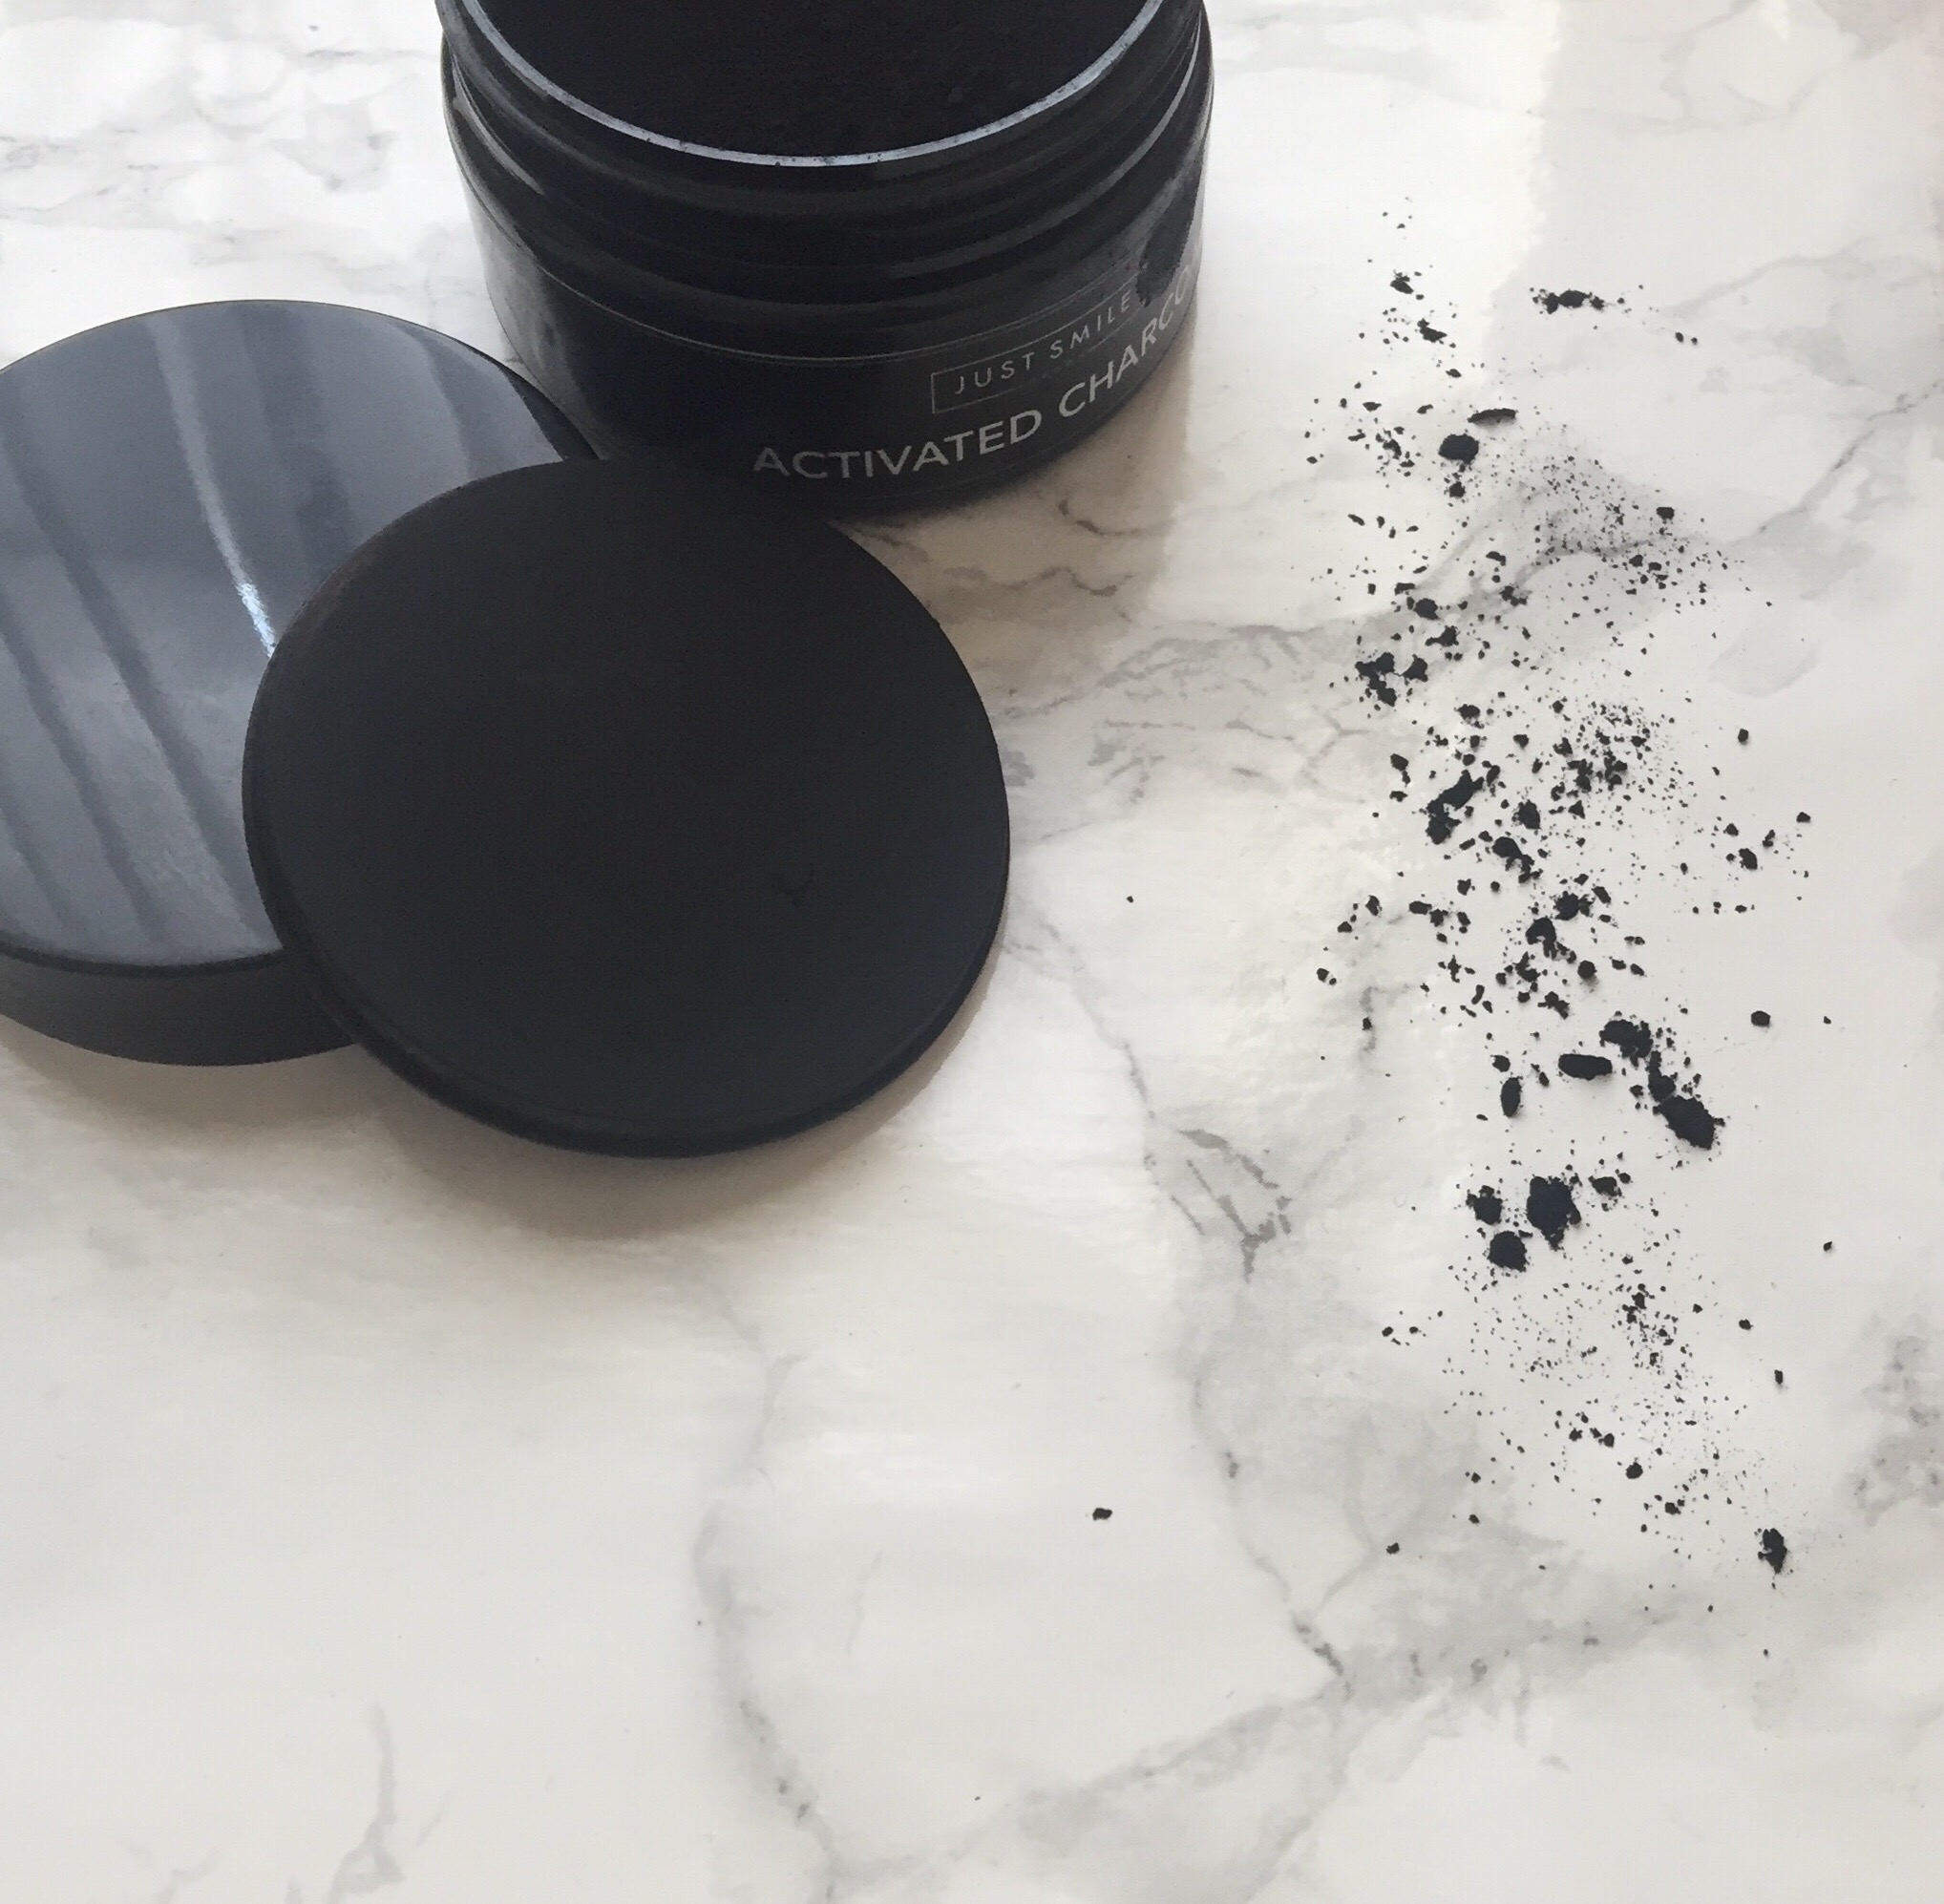 Just Smile London Activated Charcoal